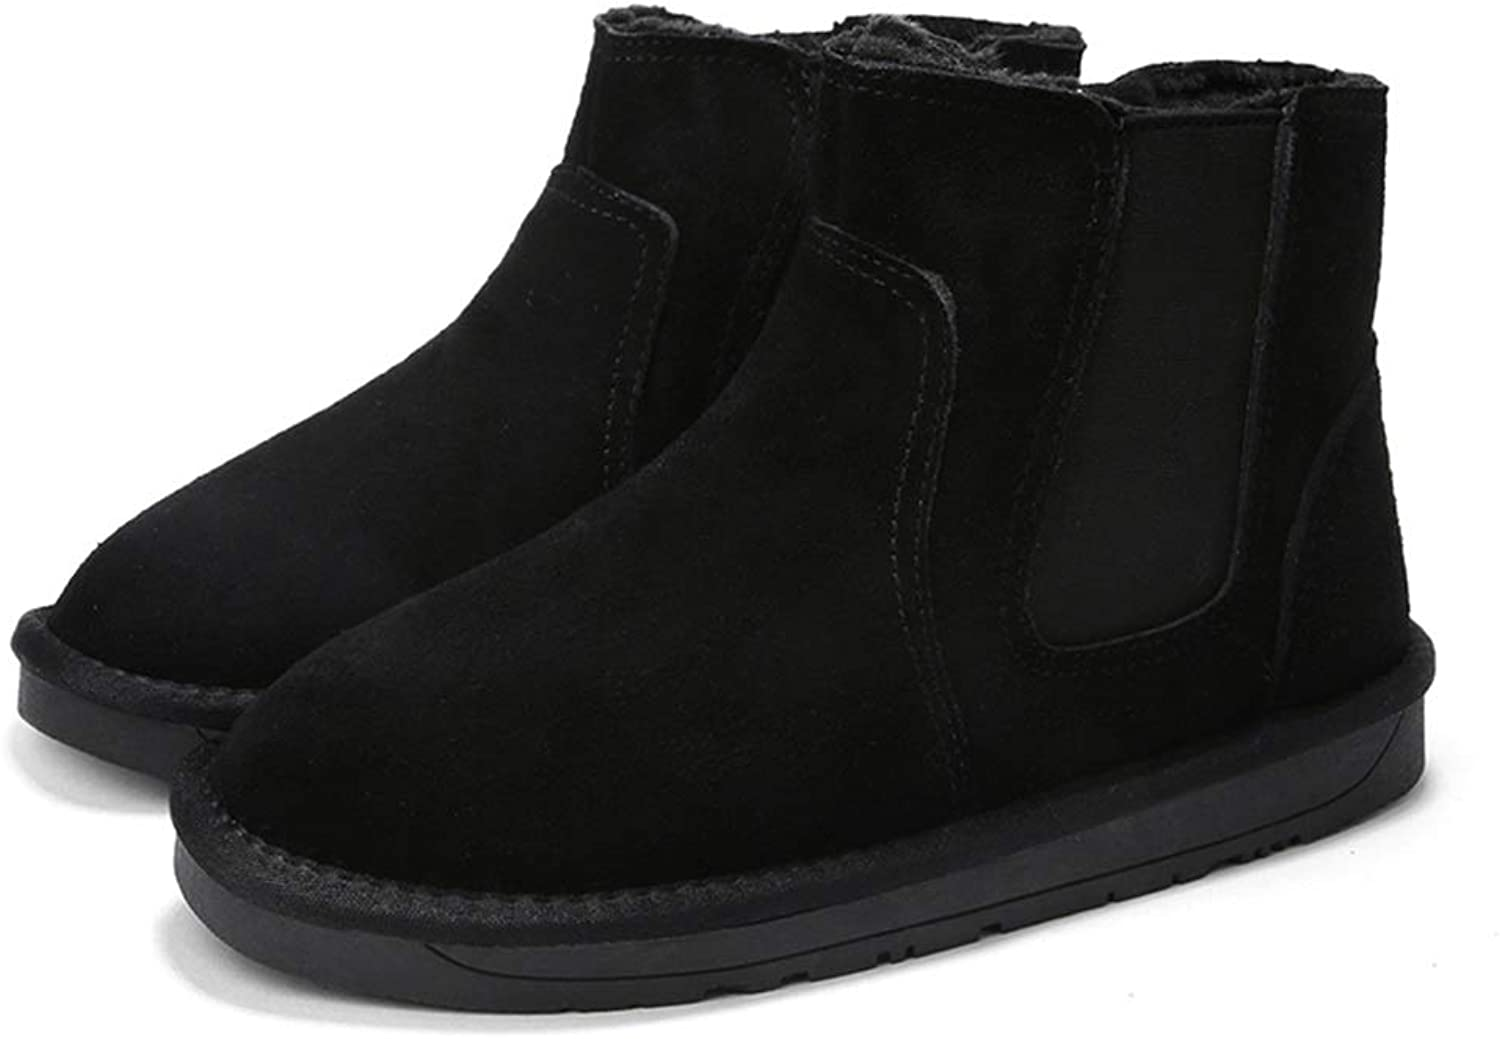 Men and Wonmen Classic Solid color Winter Faux Fleece Inside Home shoes Fashionable Snow Boots Casual